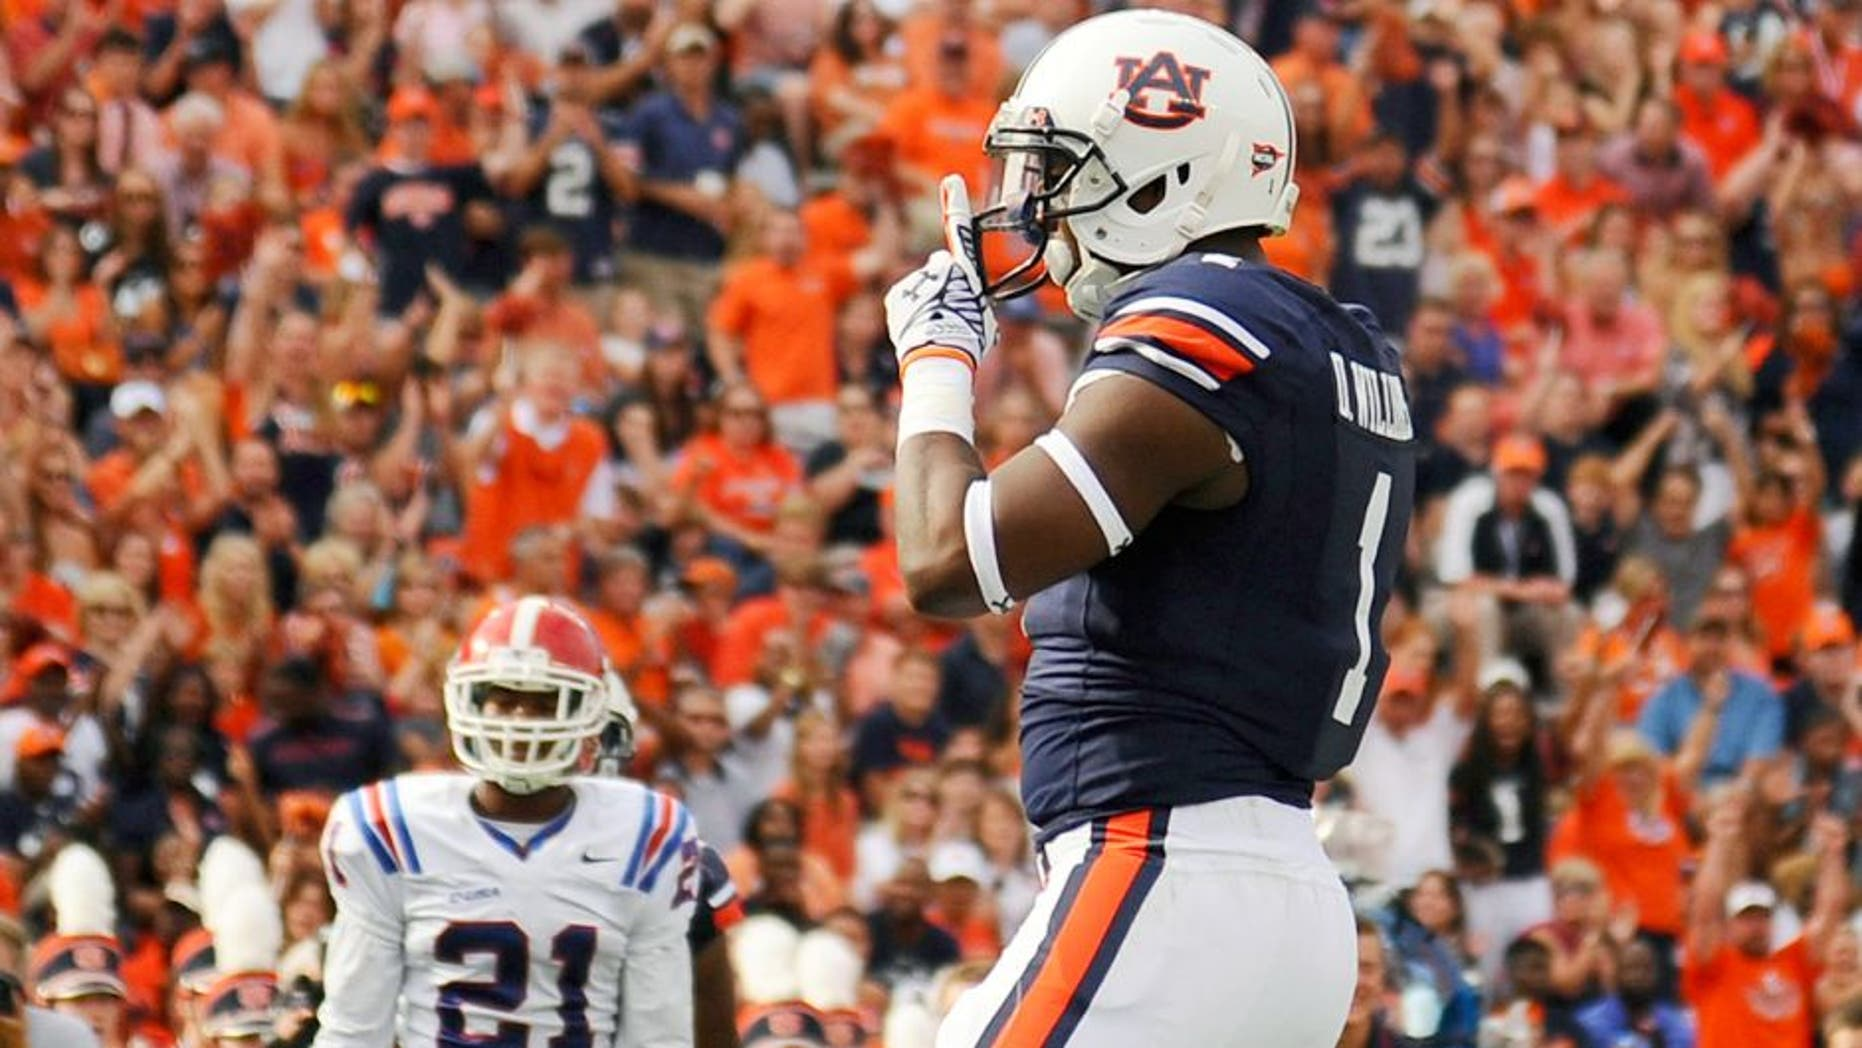 Sep 27, 2014; Auburn, AL, USA; Auburn Tigers wide receiver D'haquille Williams (1) celebrates a touchdown during the first half against the Louisiana Tech Bulldogs at Jordan Hare Stadium. Mandatory Credit: Shanna Lockwood-USA TODAY Sports